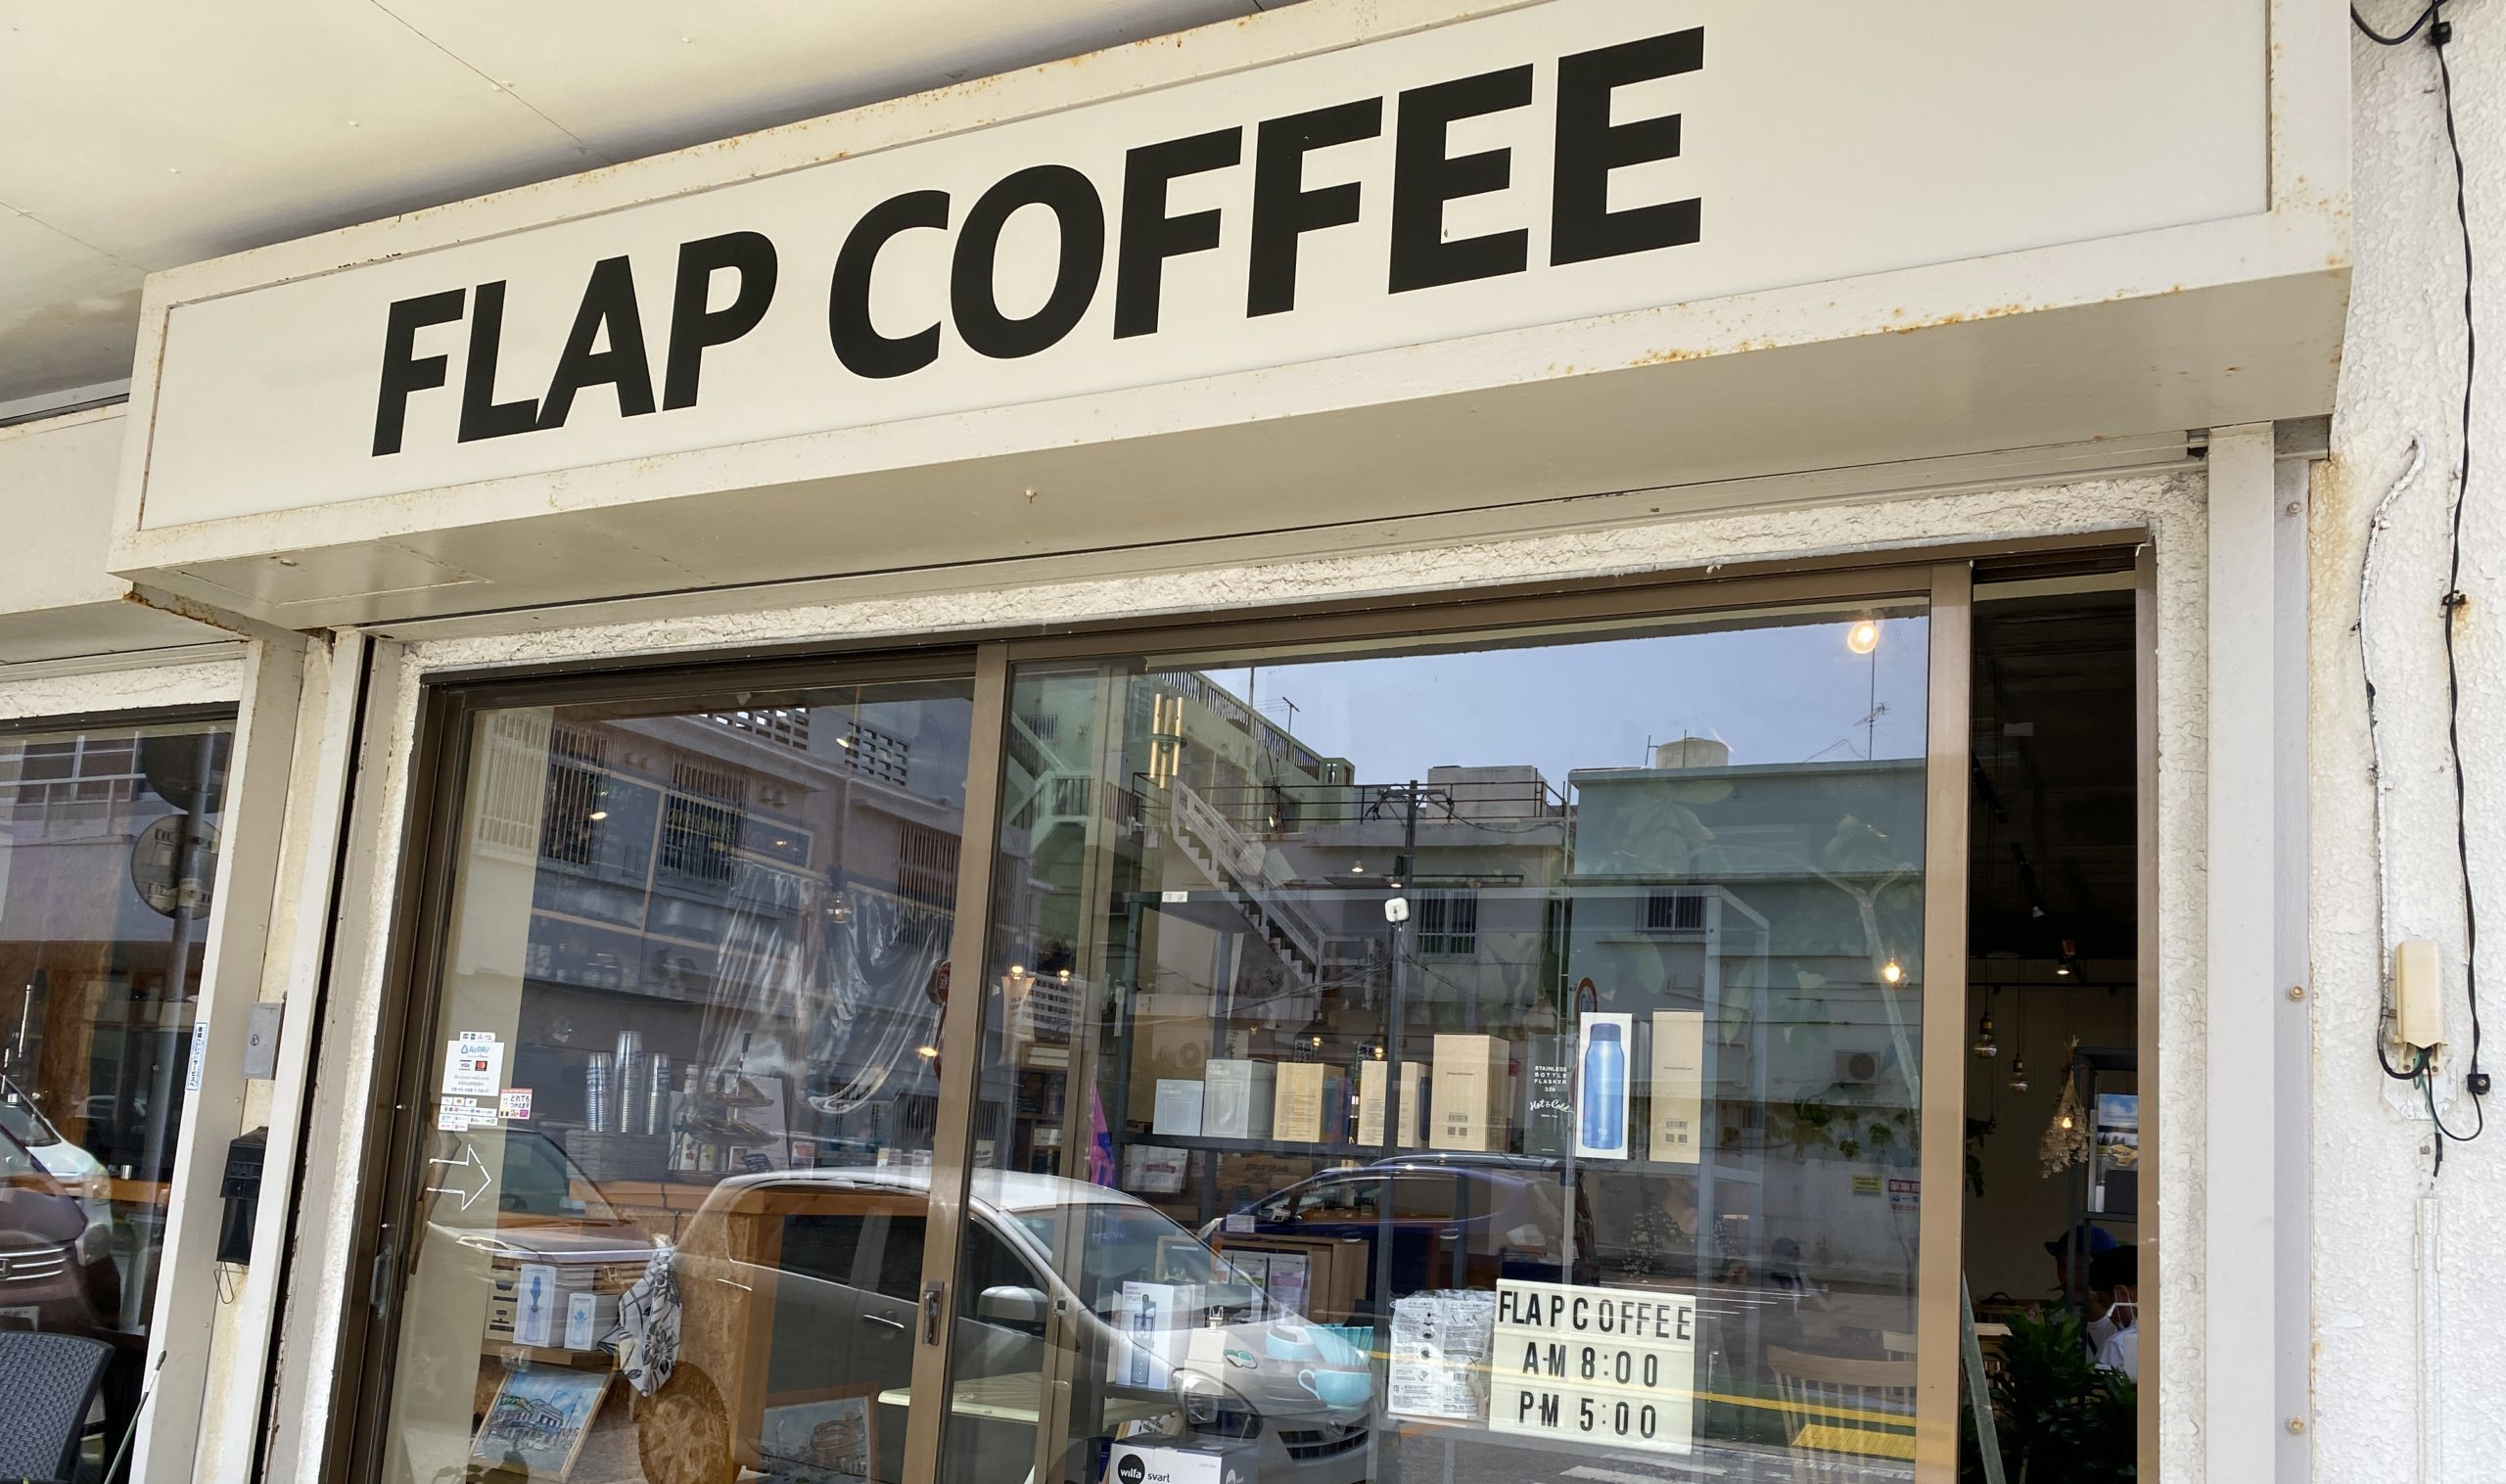 FLAP COFFEE